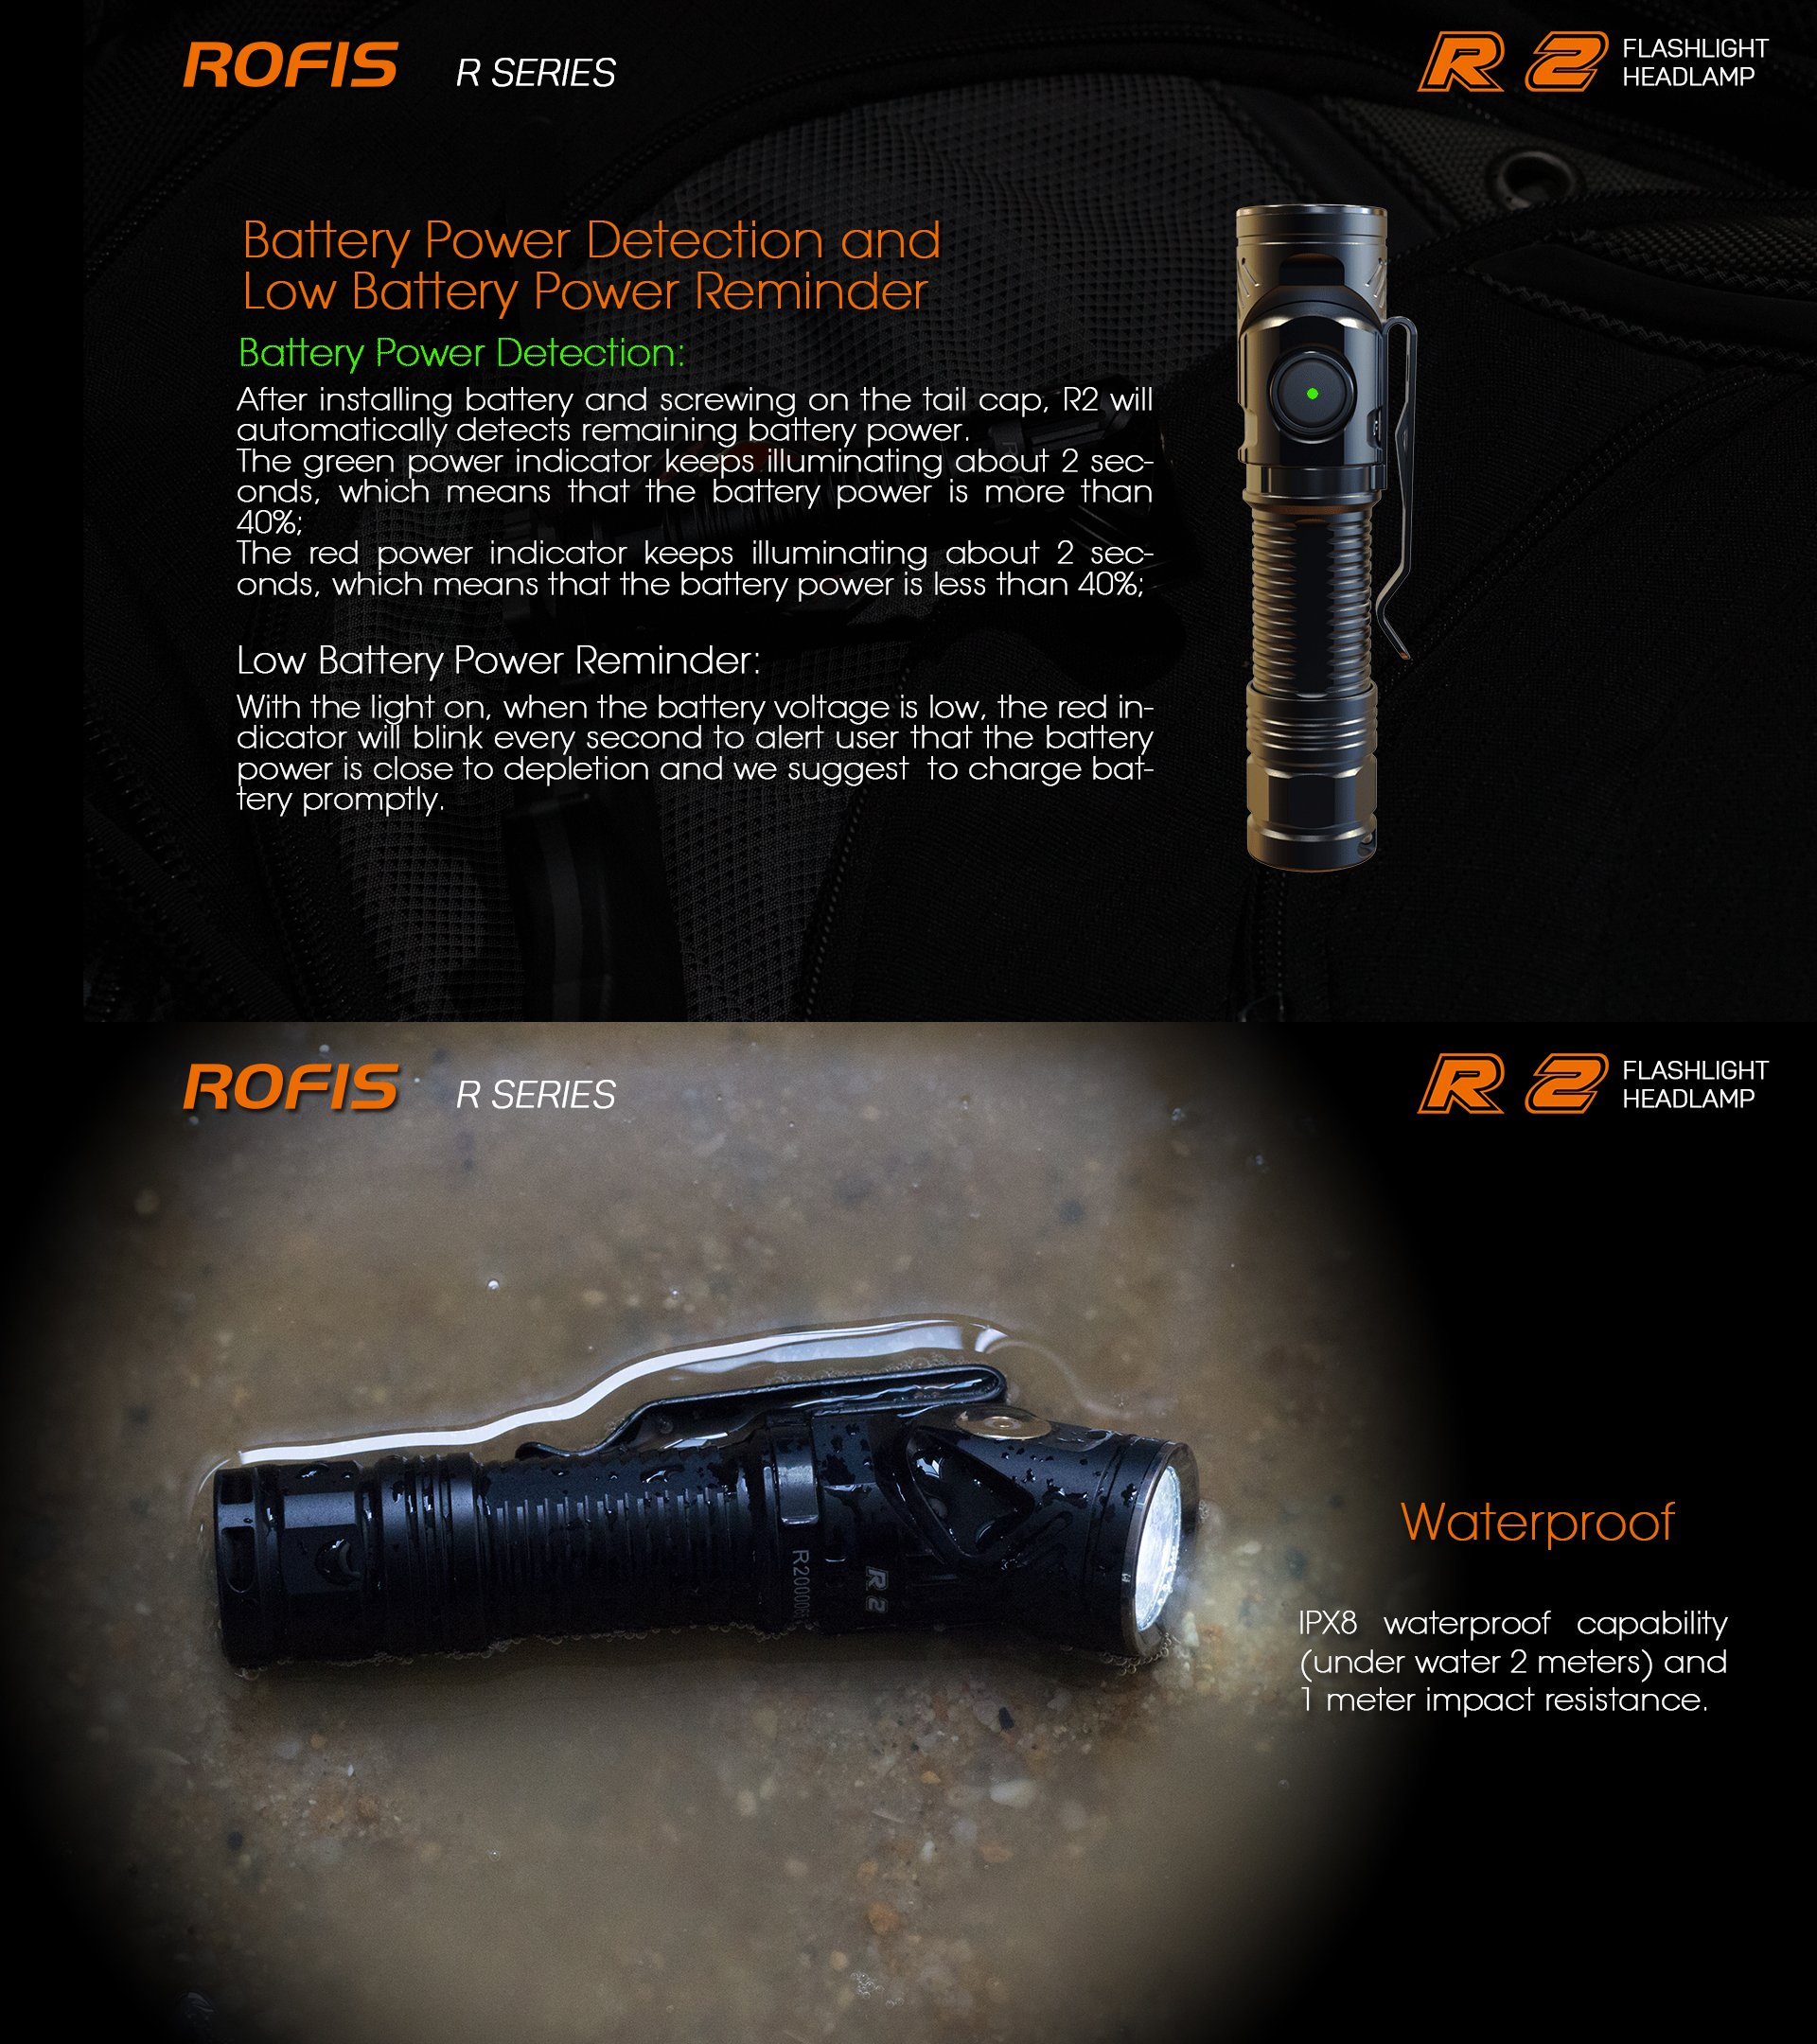 Rofis R2 CREE XM-L2 LED 700 Lumens Multifunctional Magnetic USB Rechargeable Adjustable-head Flashlight Compact 14500 Flashlight,with 14500 Battery,Charging Cable and Headband (Neutral White(5000 K)) by Rofis (Image #8)